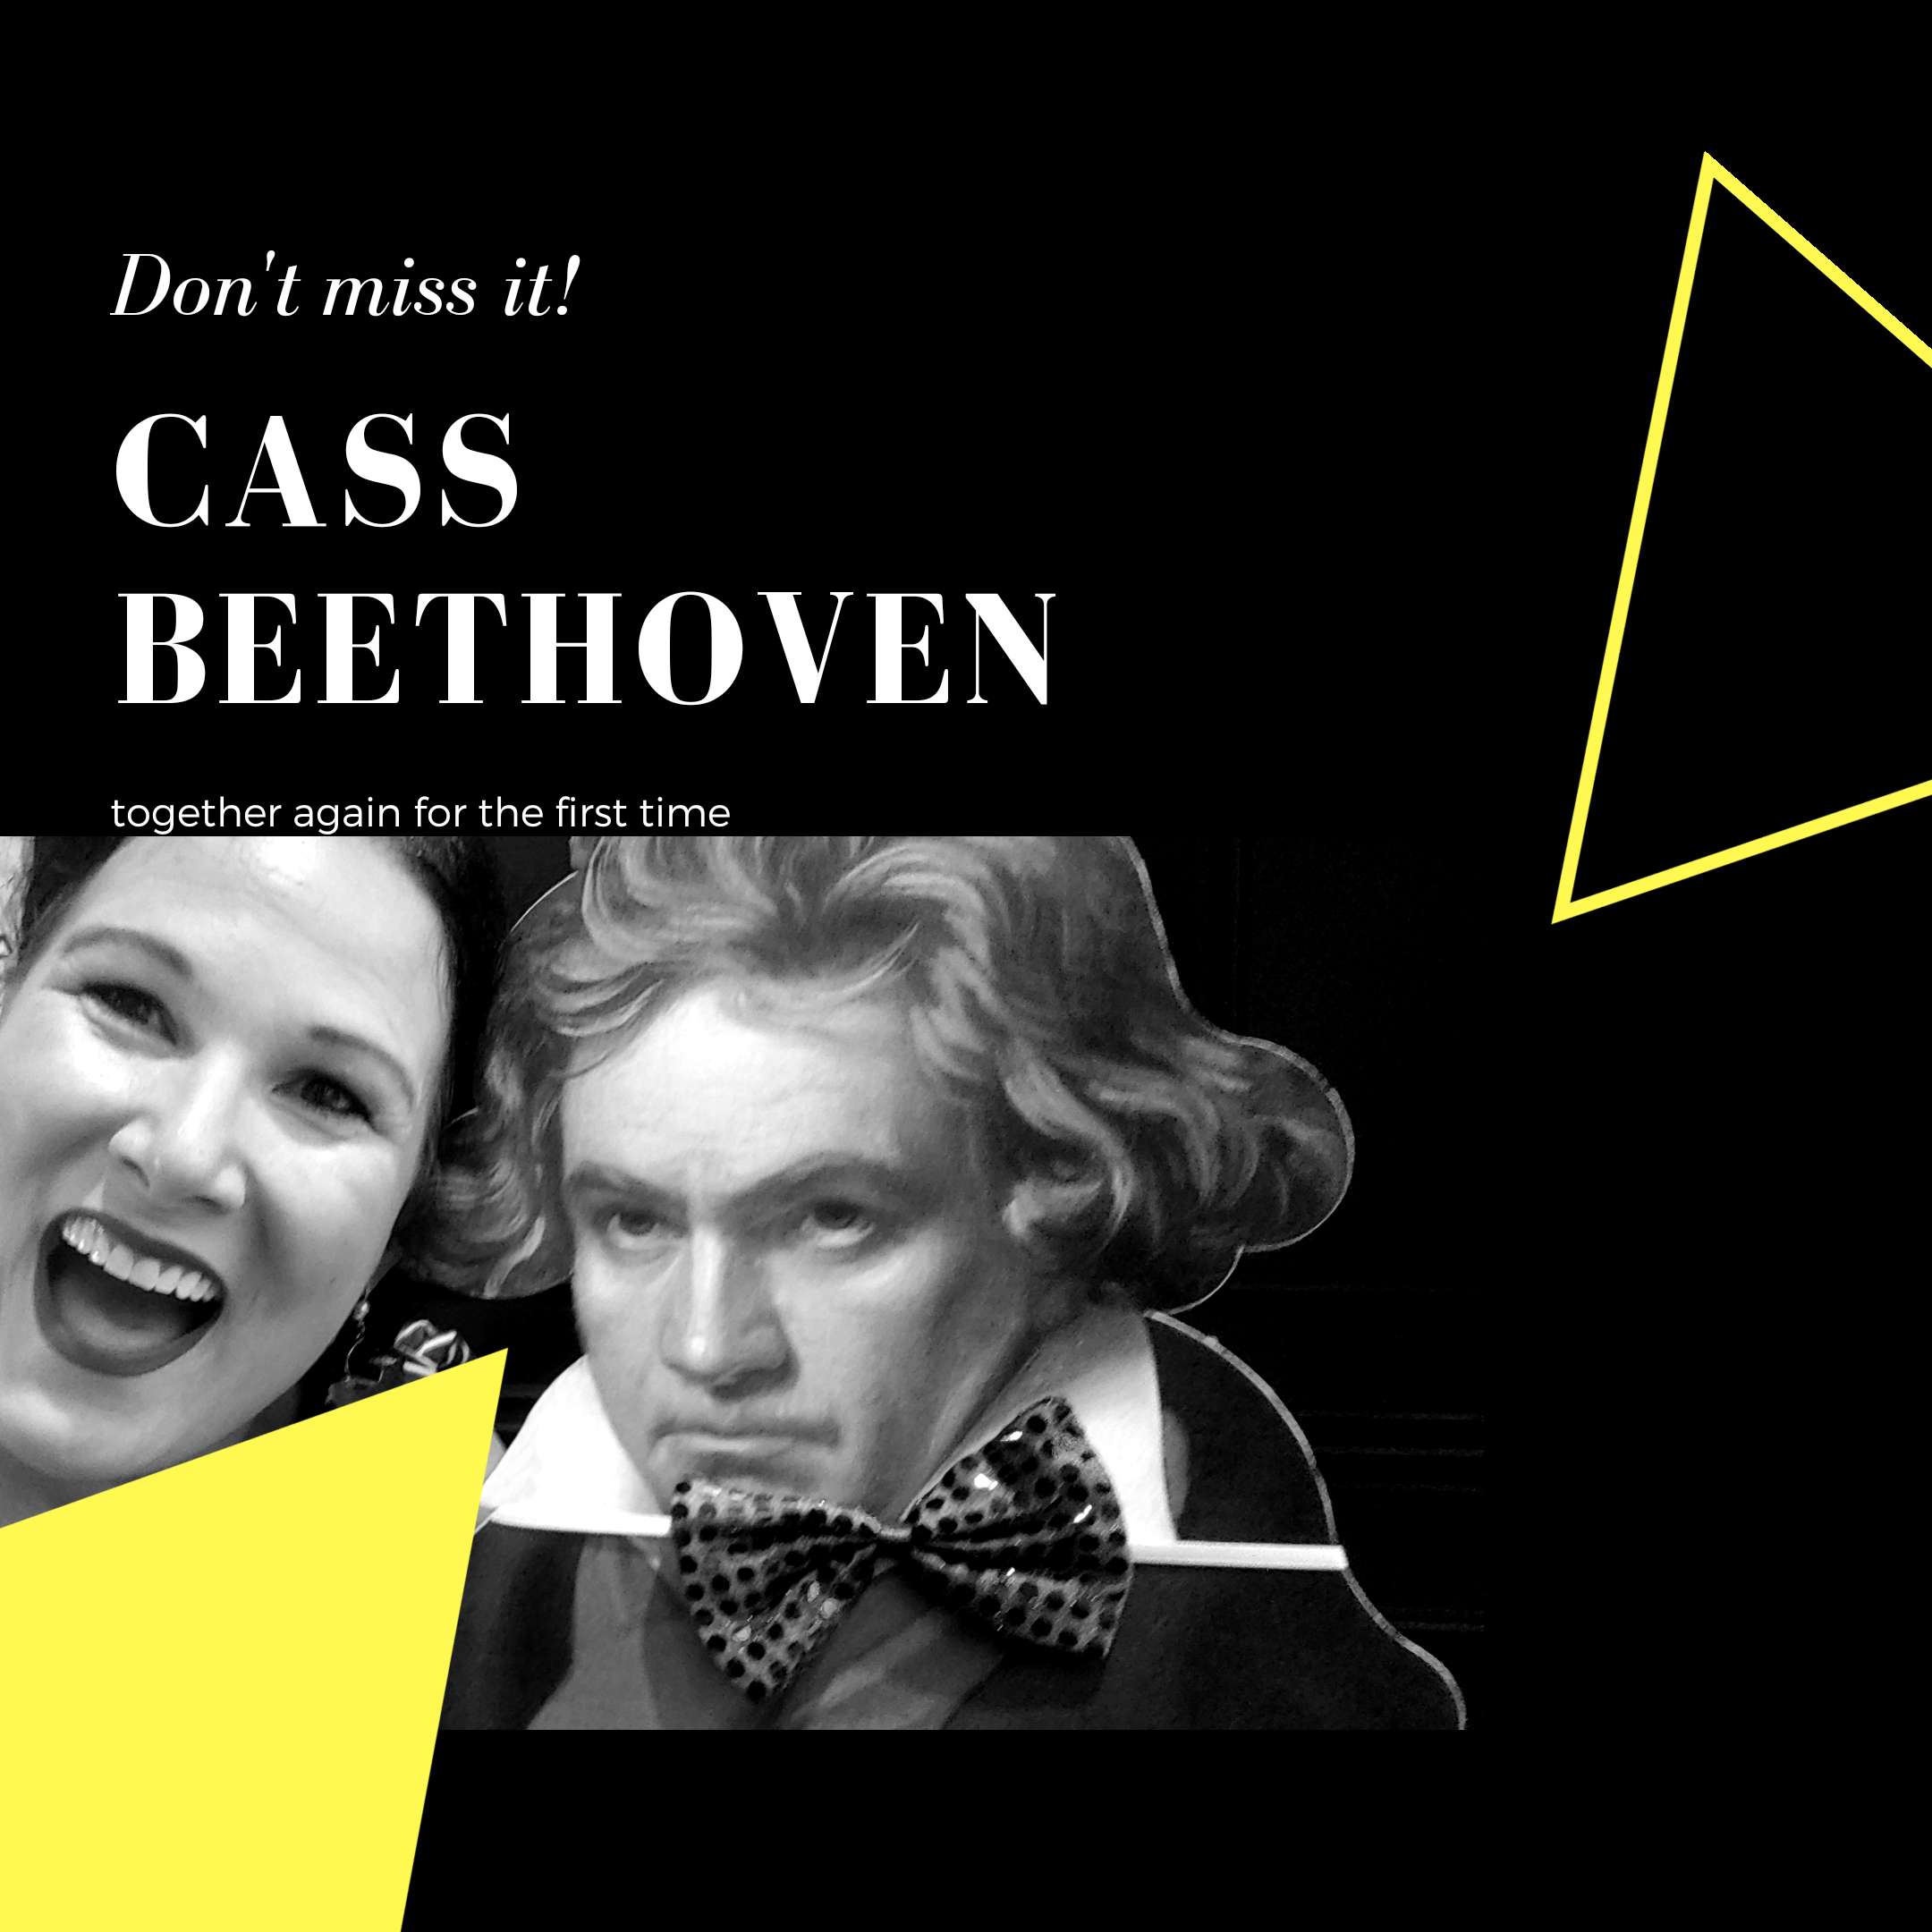 Cass Beethoven.png